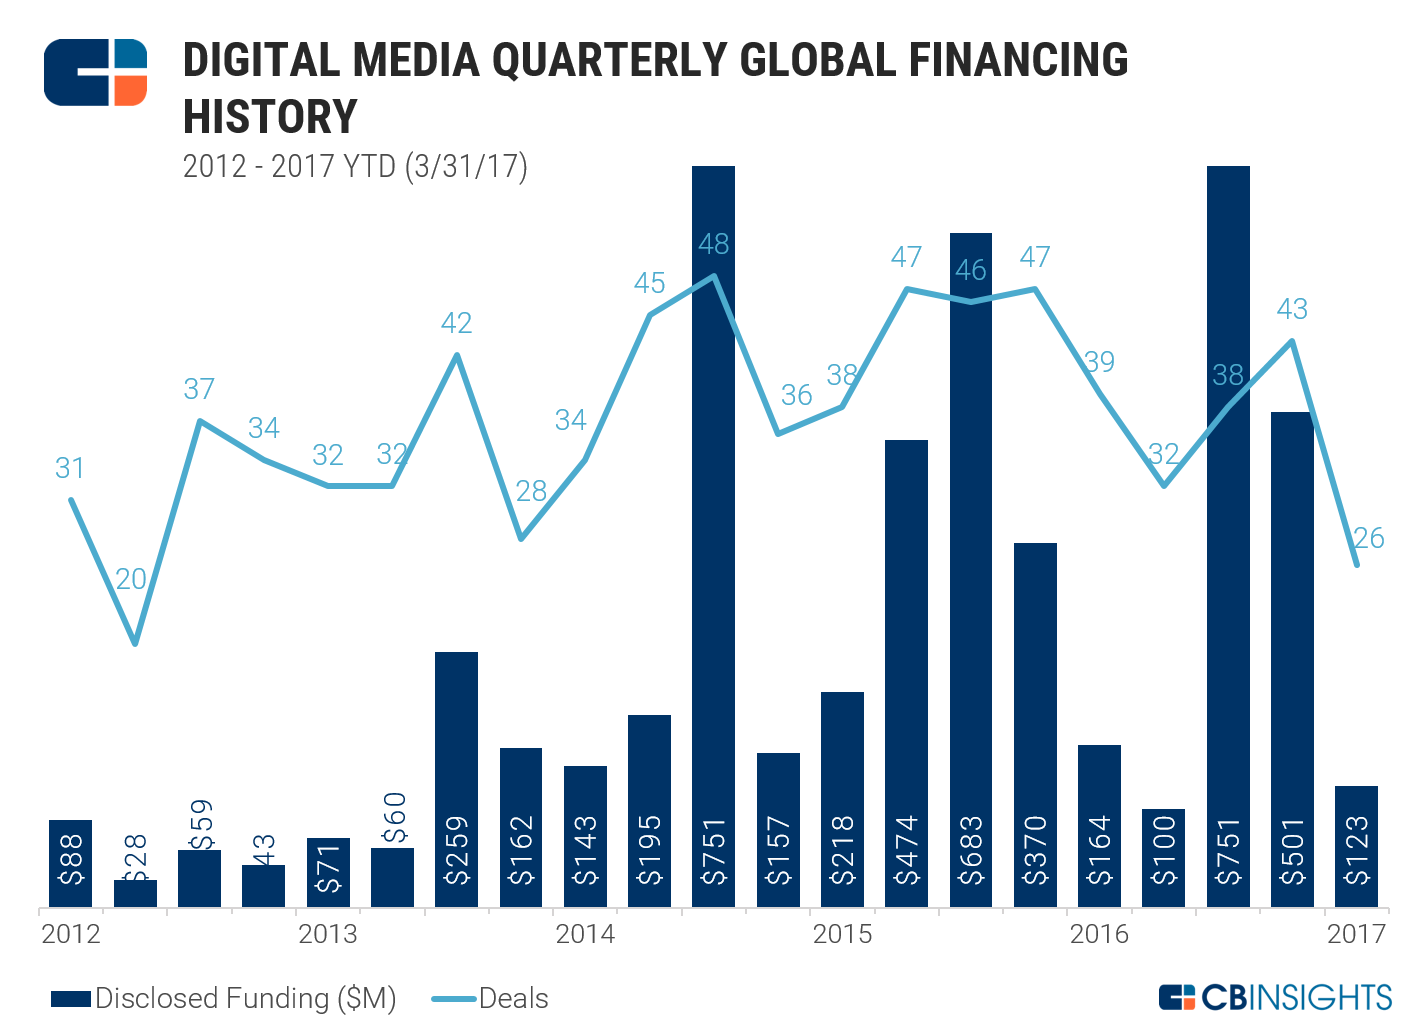 digitalmediaquarterly